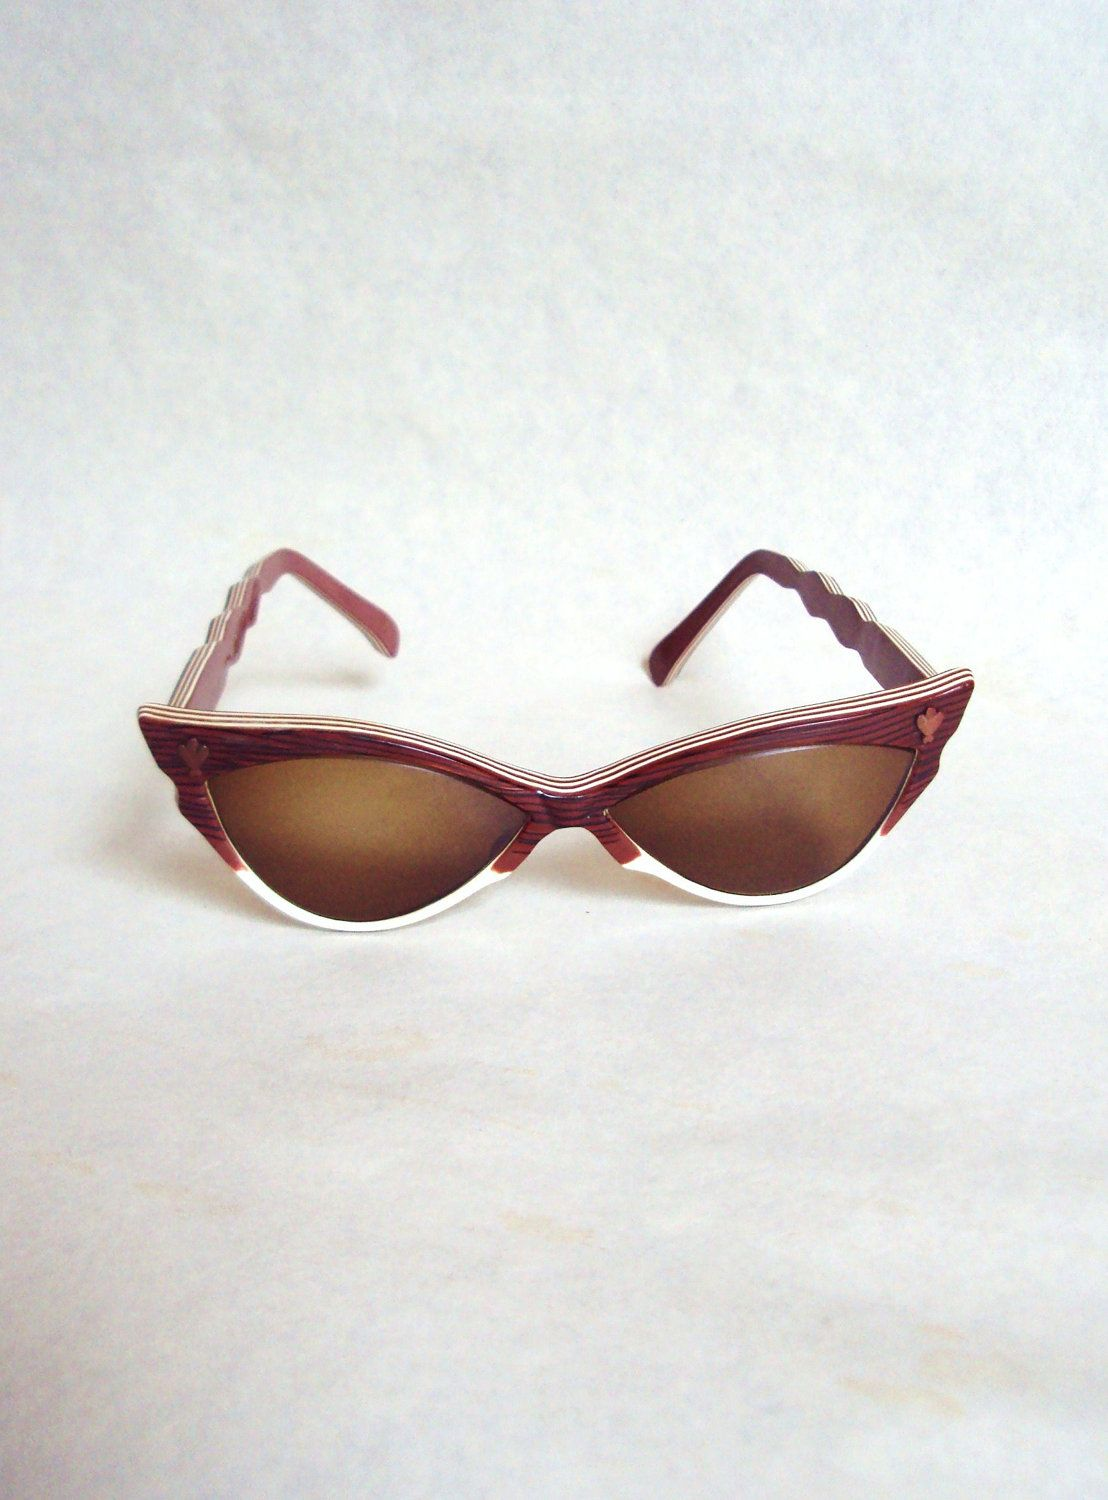 1950s Brown & white stripe cat eye sunglasses